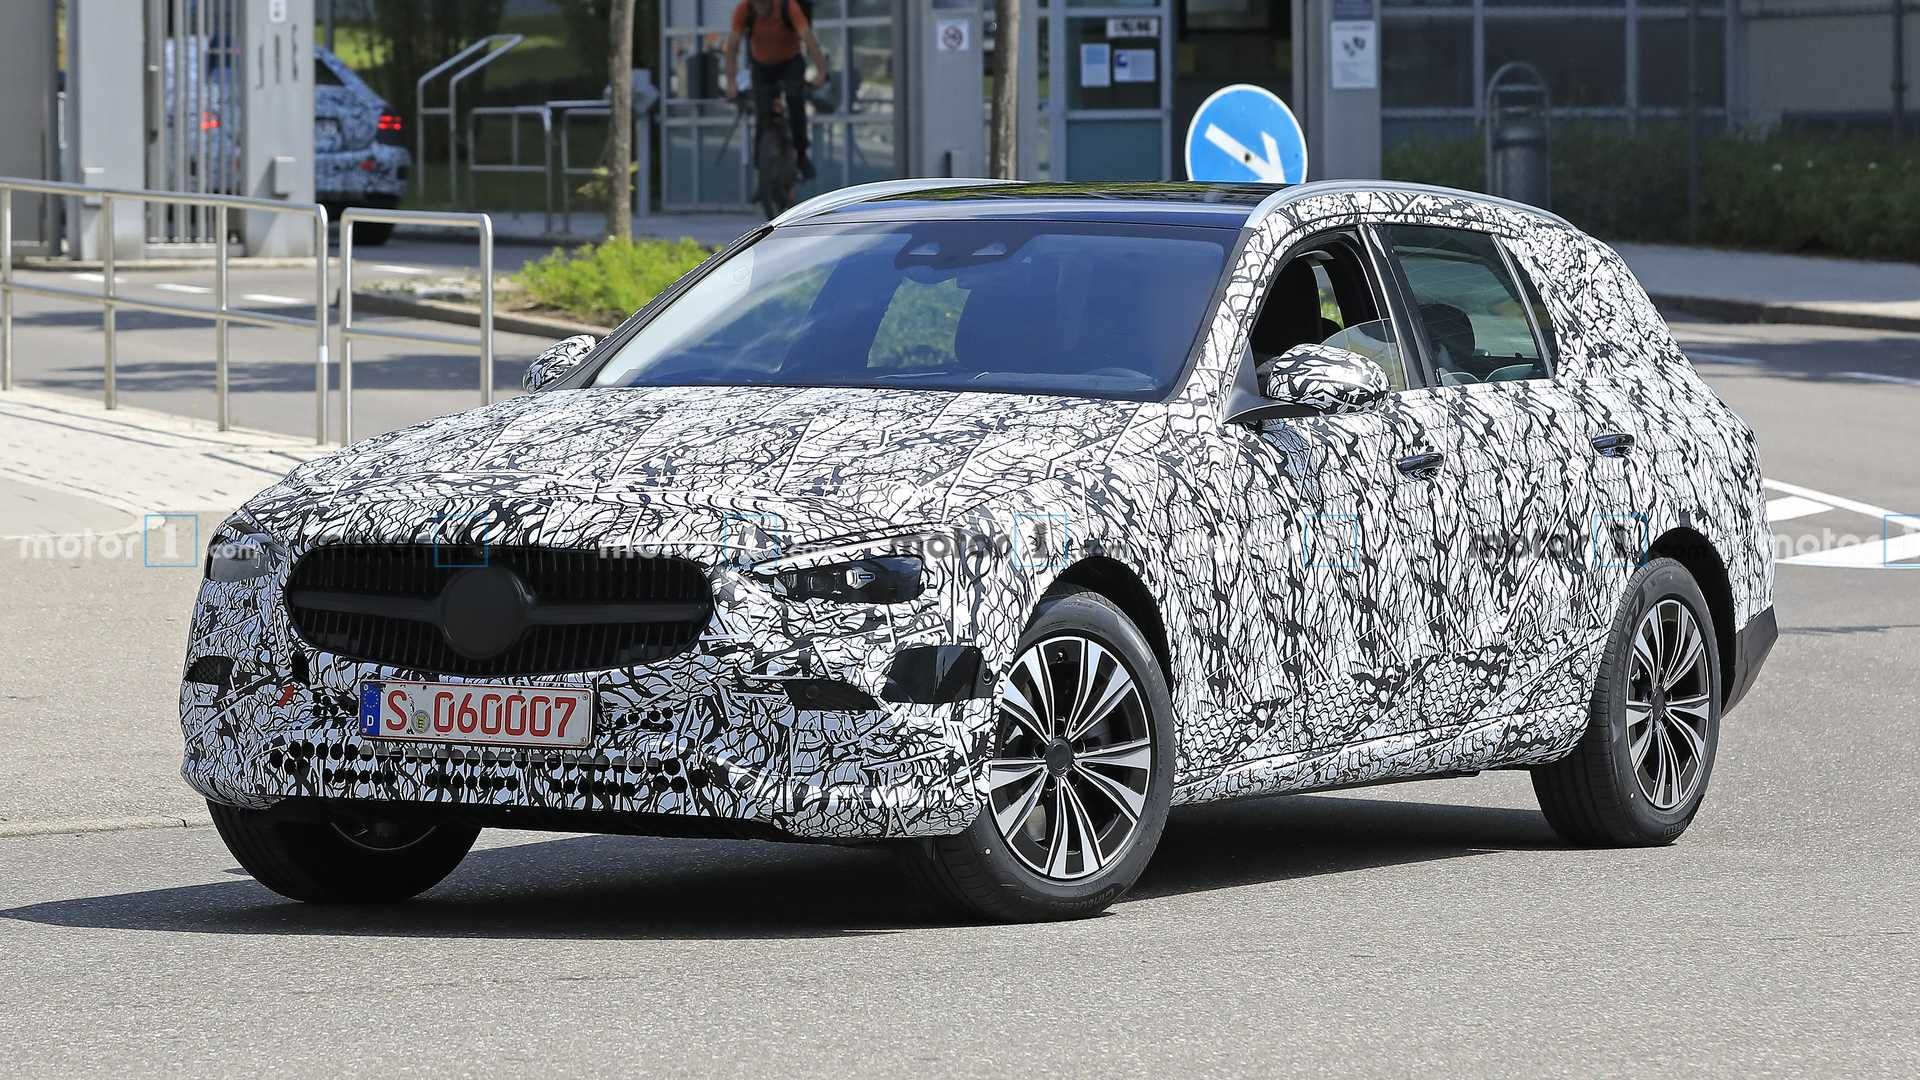 2021-mercedes-c-class-estate-spy-photo-t